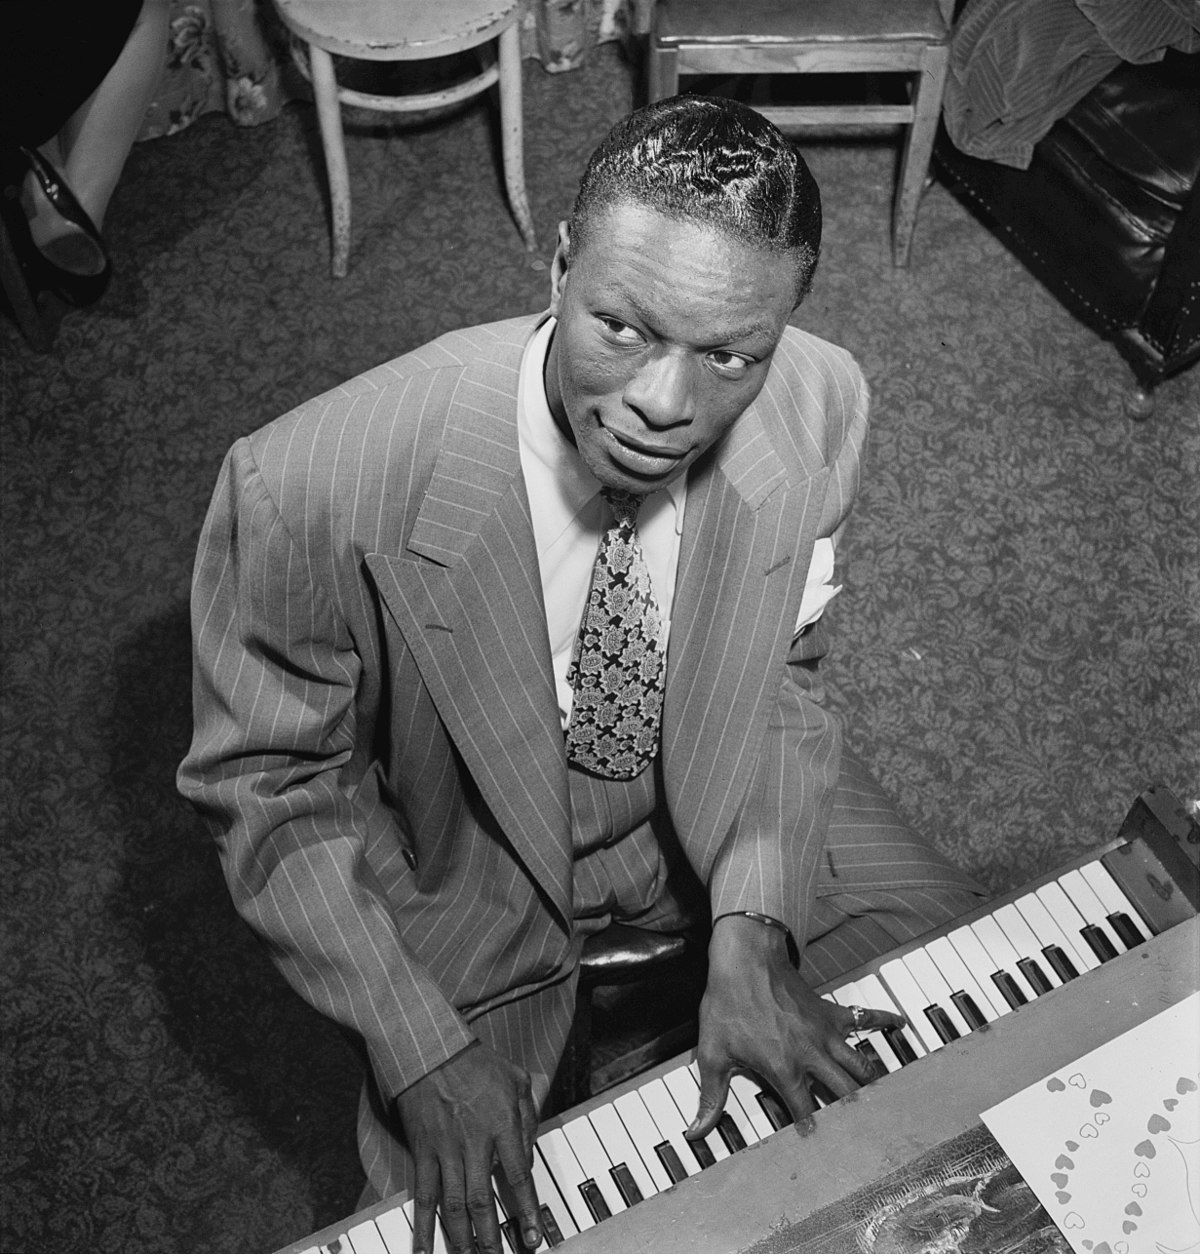 New Trends This Is The Nat King Cole Inspired Design Piece 3 New Trends New Trends: This Is The Nat King Cole Inspired Design Piece! New Trends This Is The Nat King Cole Inspired Design Piece 3